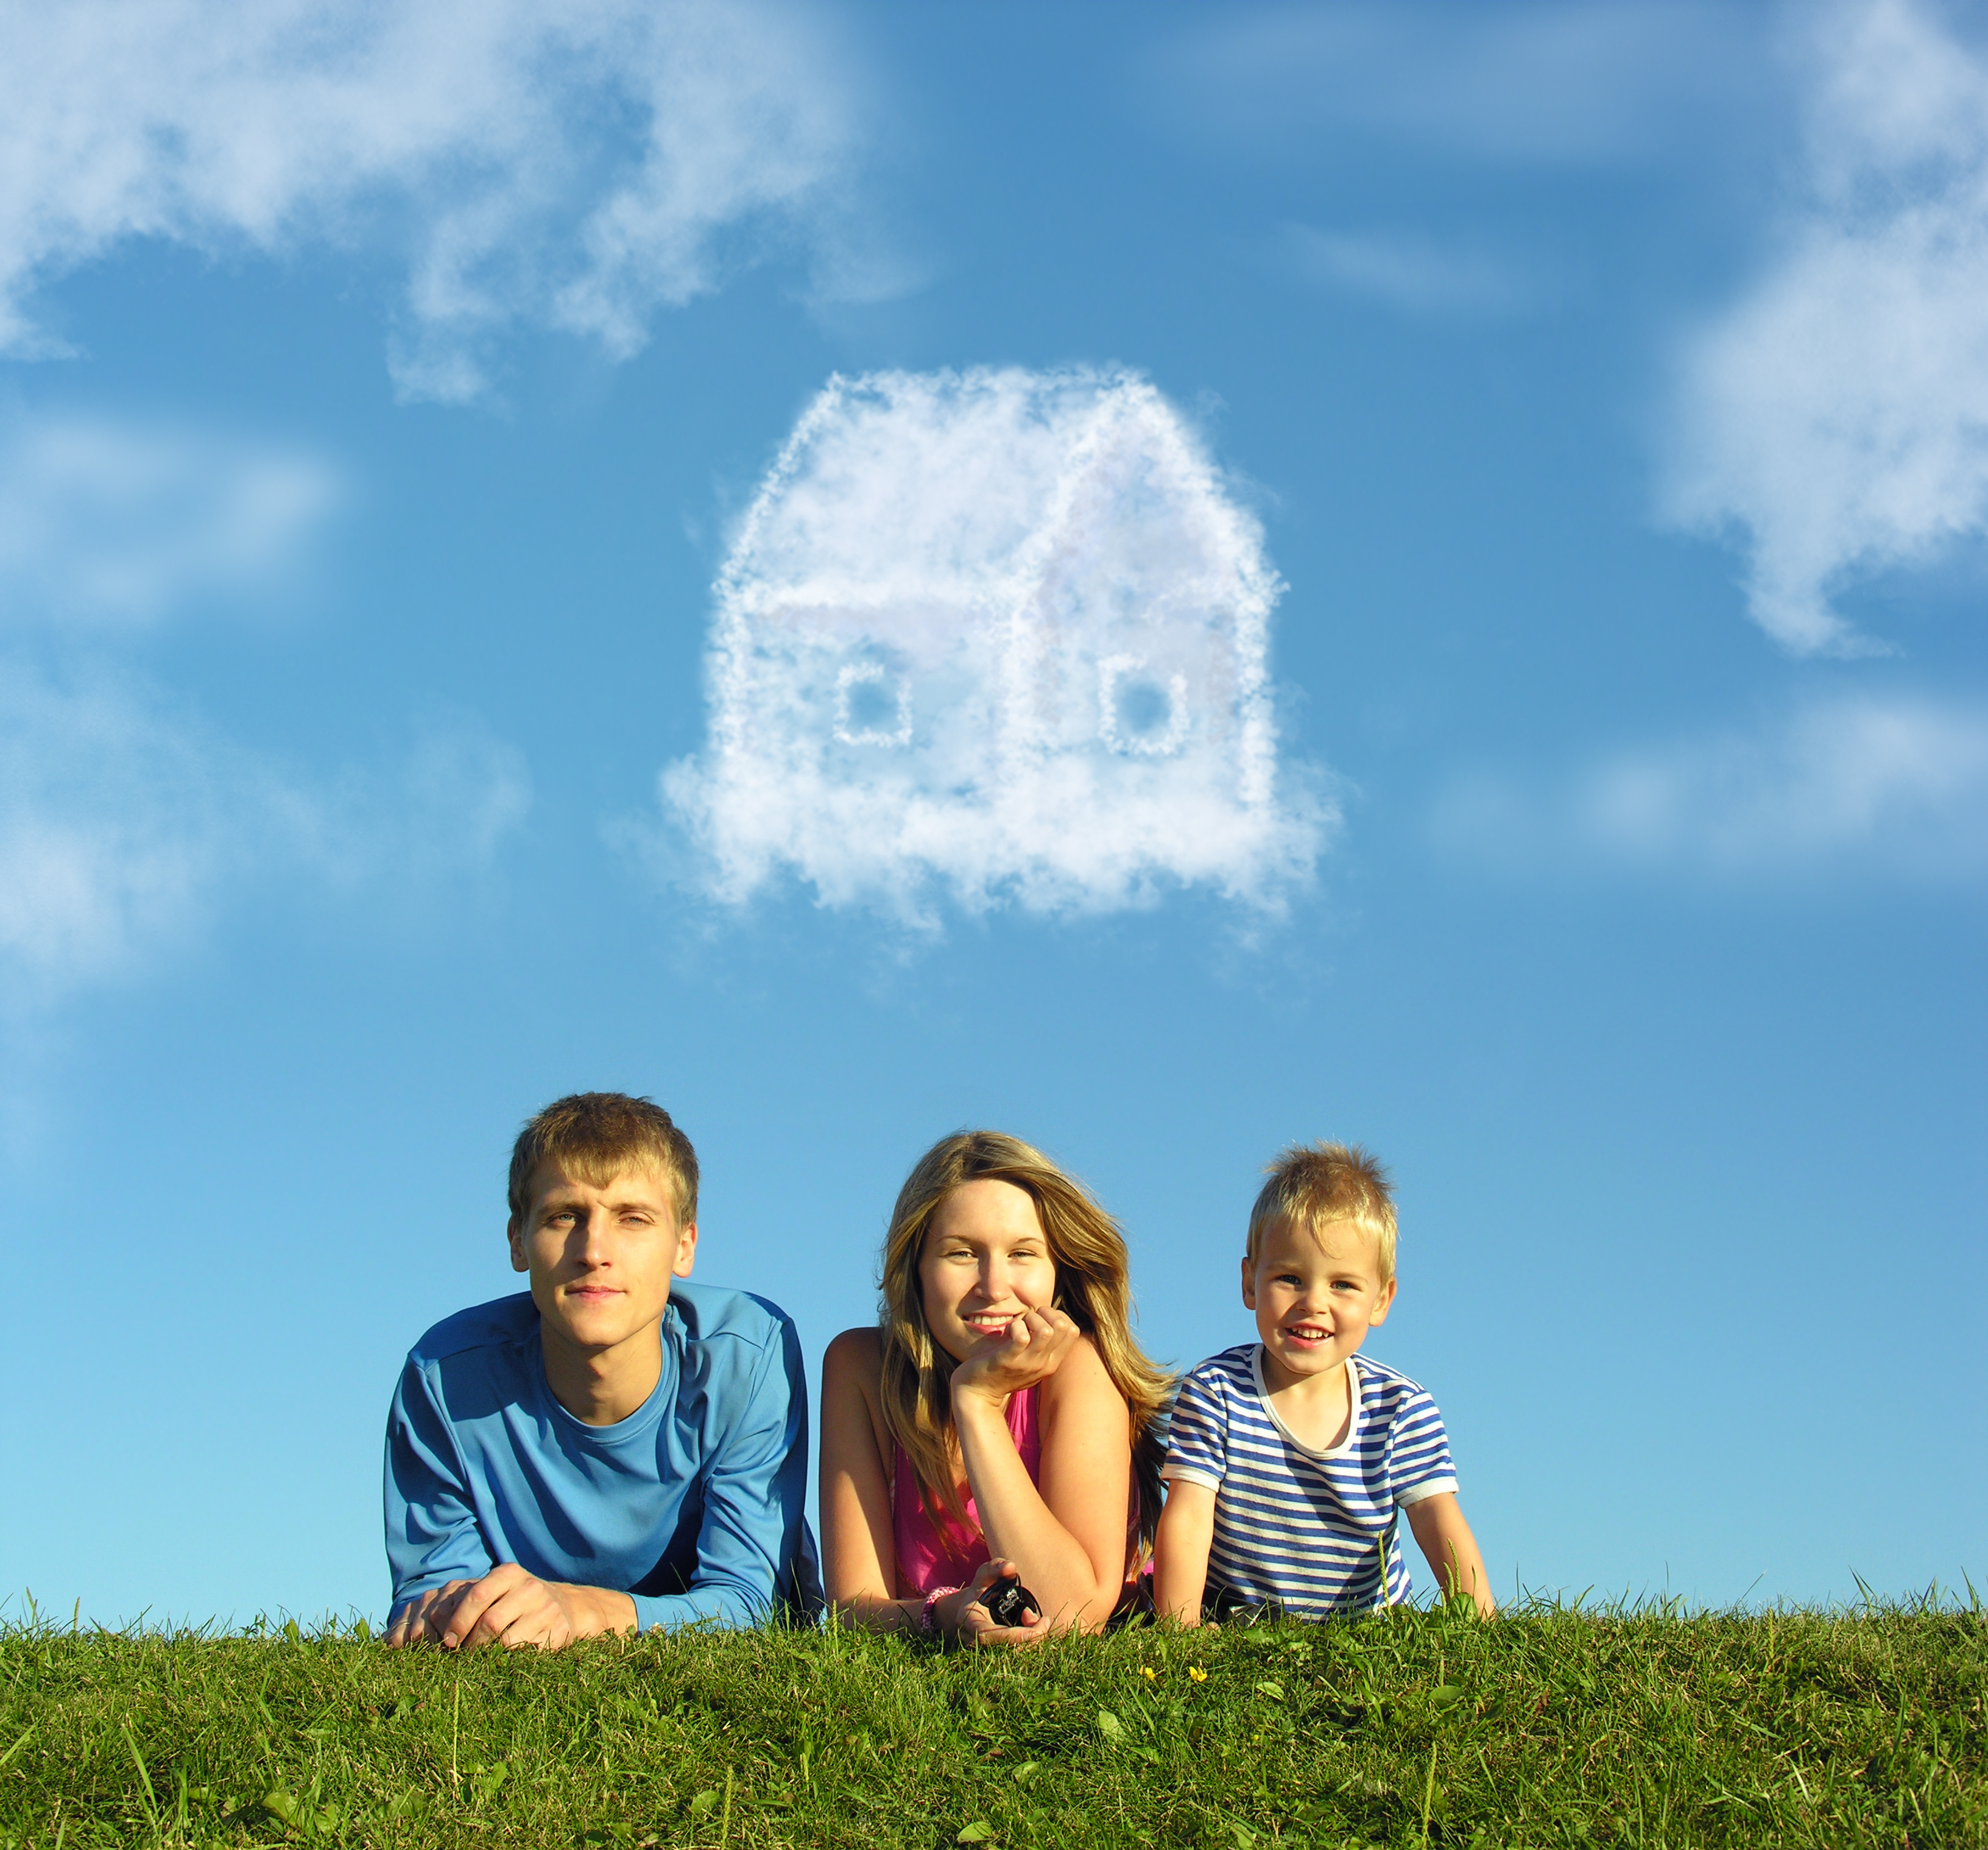 Beware of Love at First Sight When Buying a Home